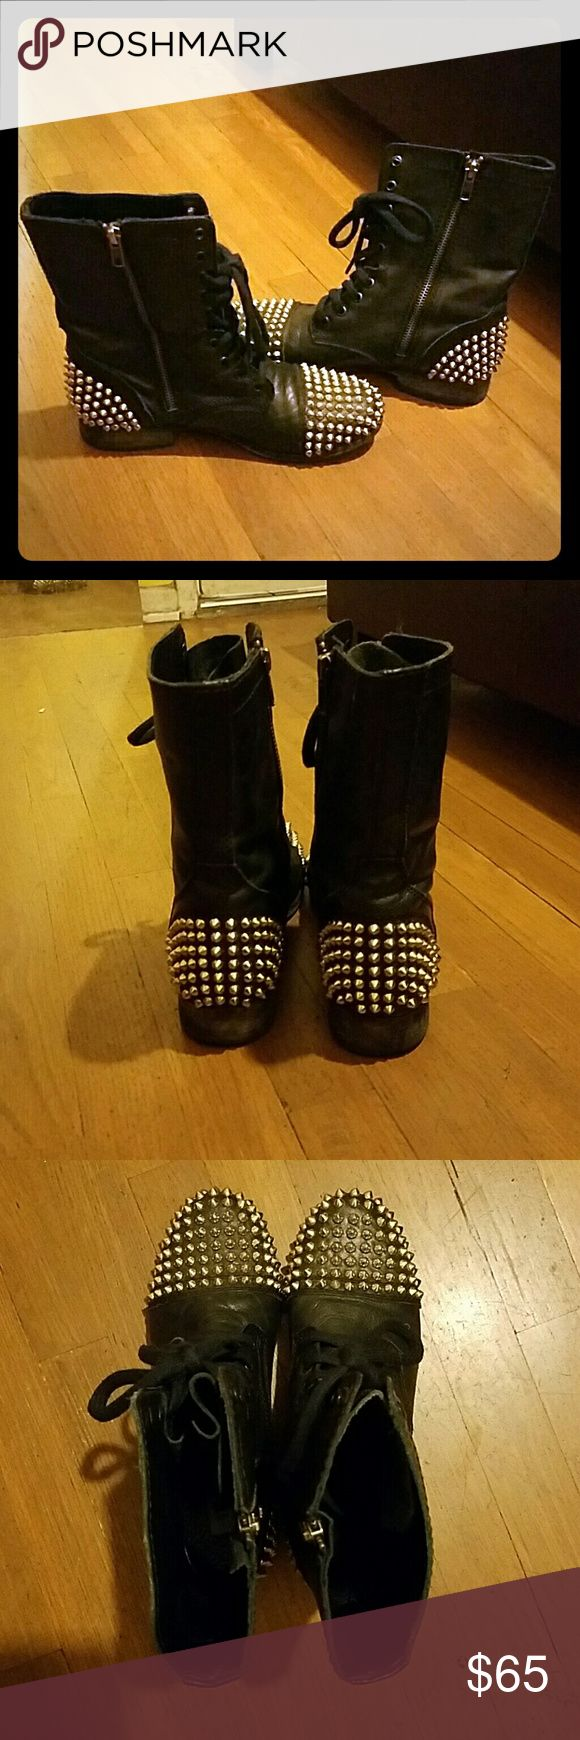 "Steve Madden Studded Combat Boots Studded combat boots from Steve Madden. Style name is ""Tarney"". Real leather and beautiful metal studs. Steve Madden Shoes Combat & Moto Boots"